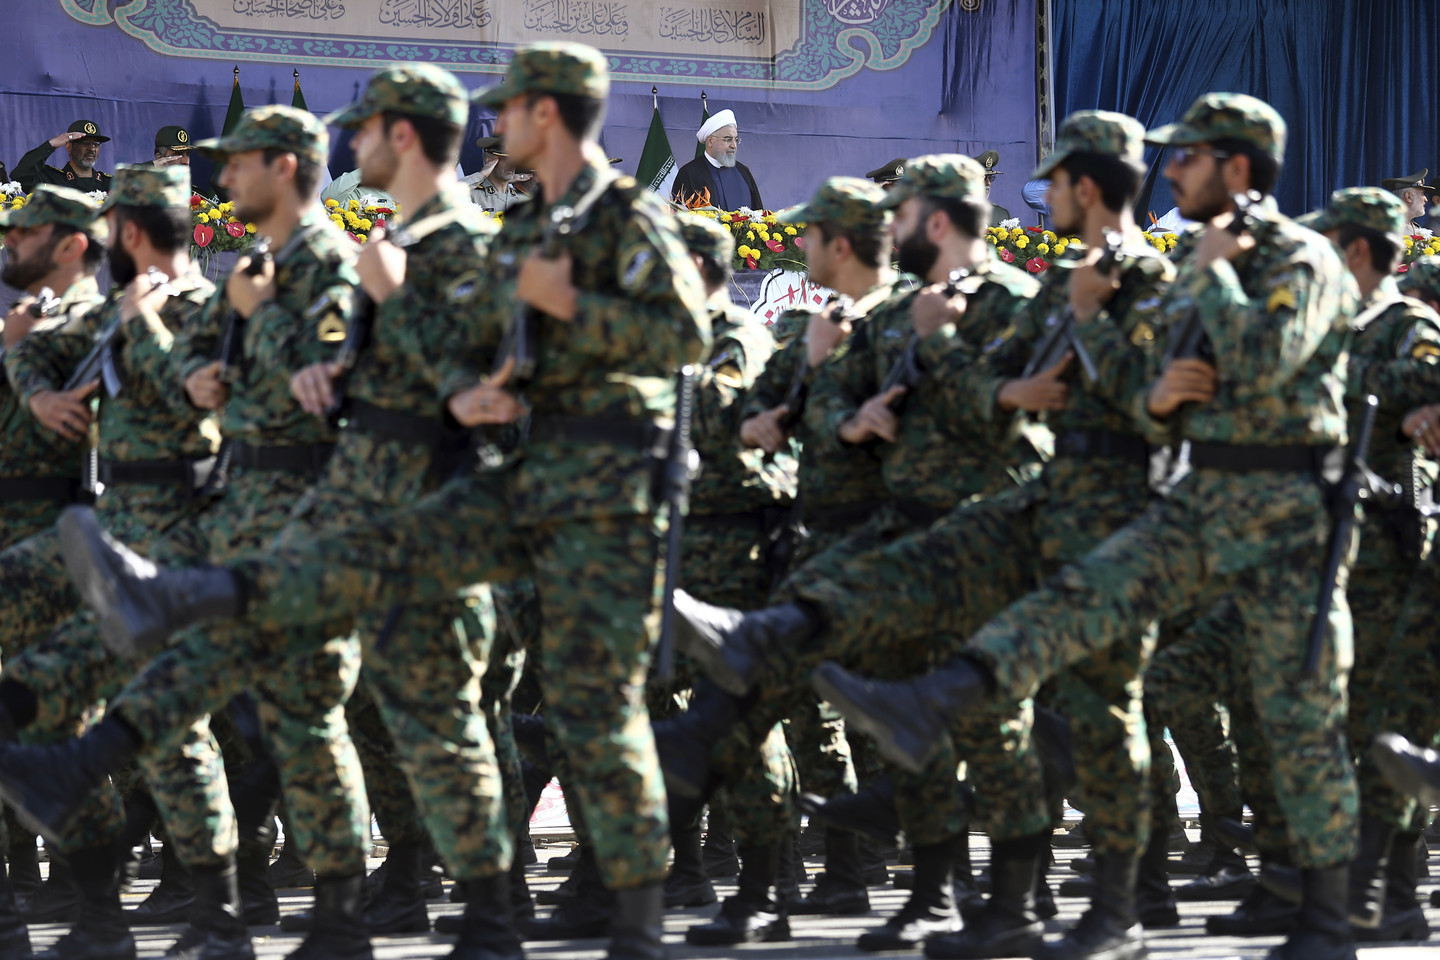 Iran's Reserve of Last Resort: Uncovering the Islamic Revolutionary Guard Corps Ground Forces Order of Battle